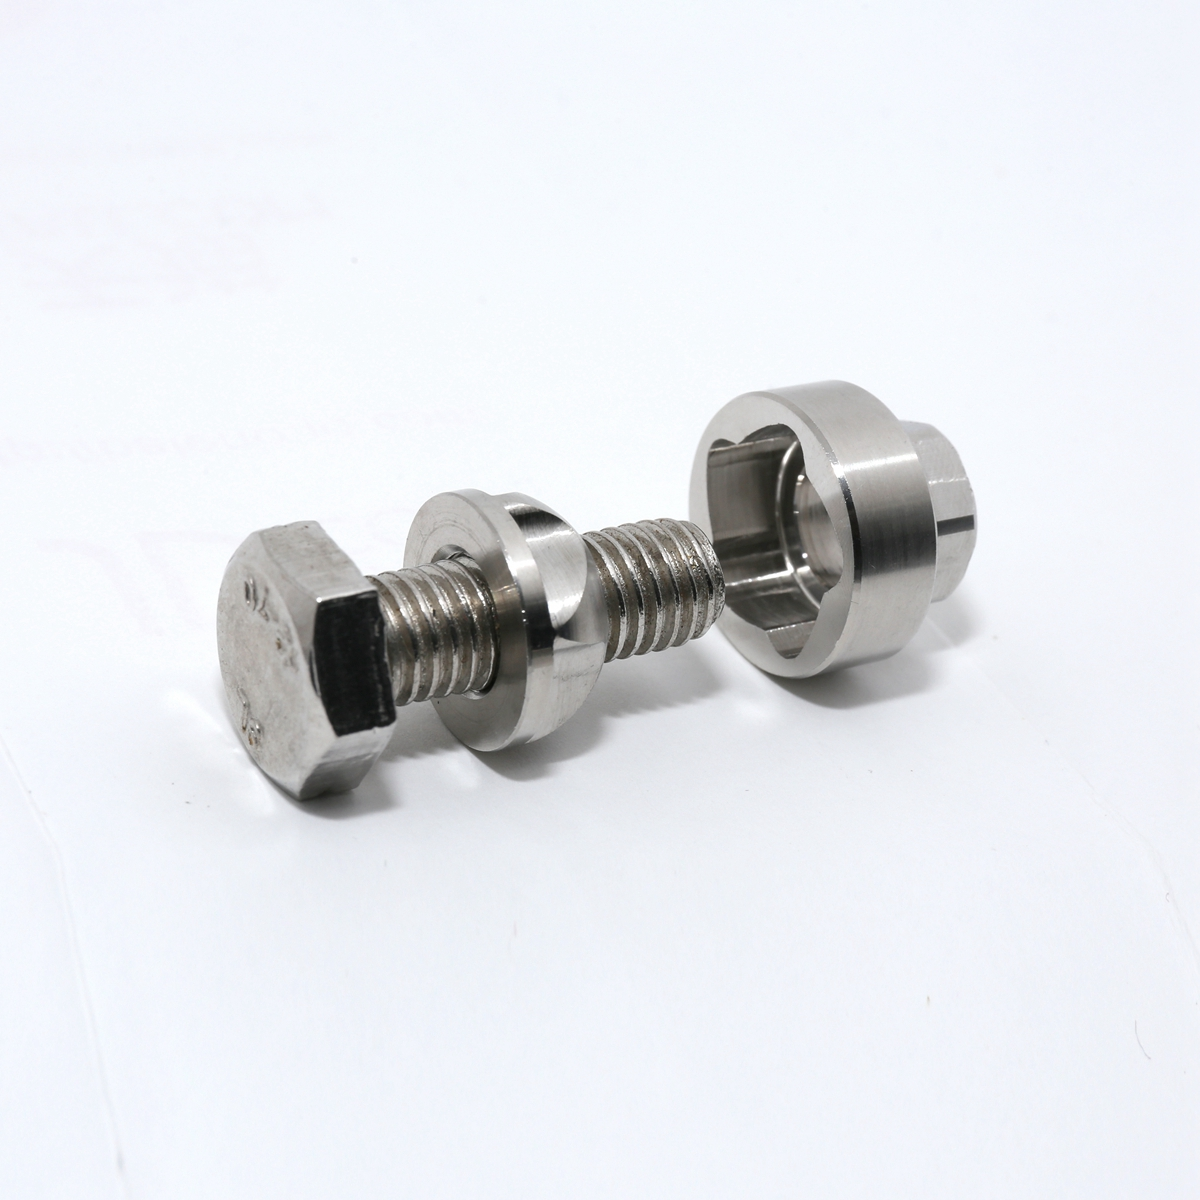 M10 Anti Theft Security Locks Nut Key 10mm For Led Work